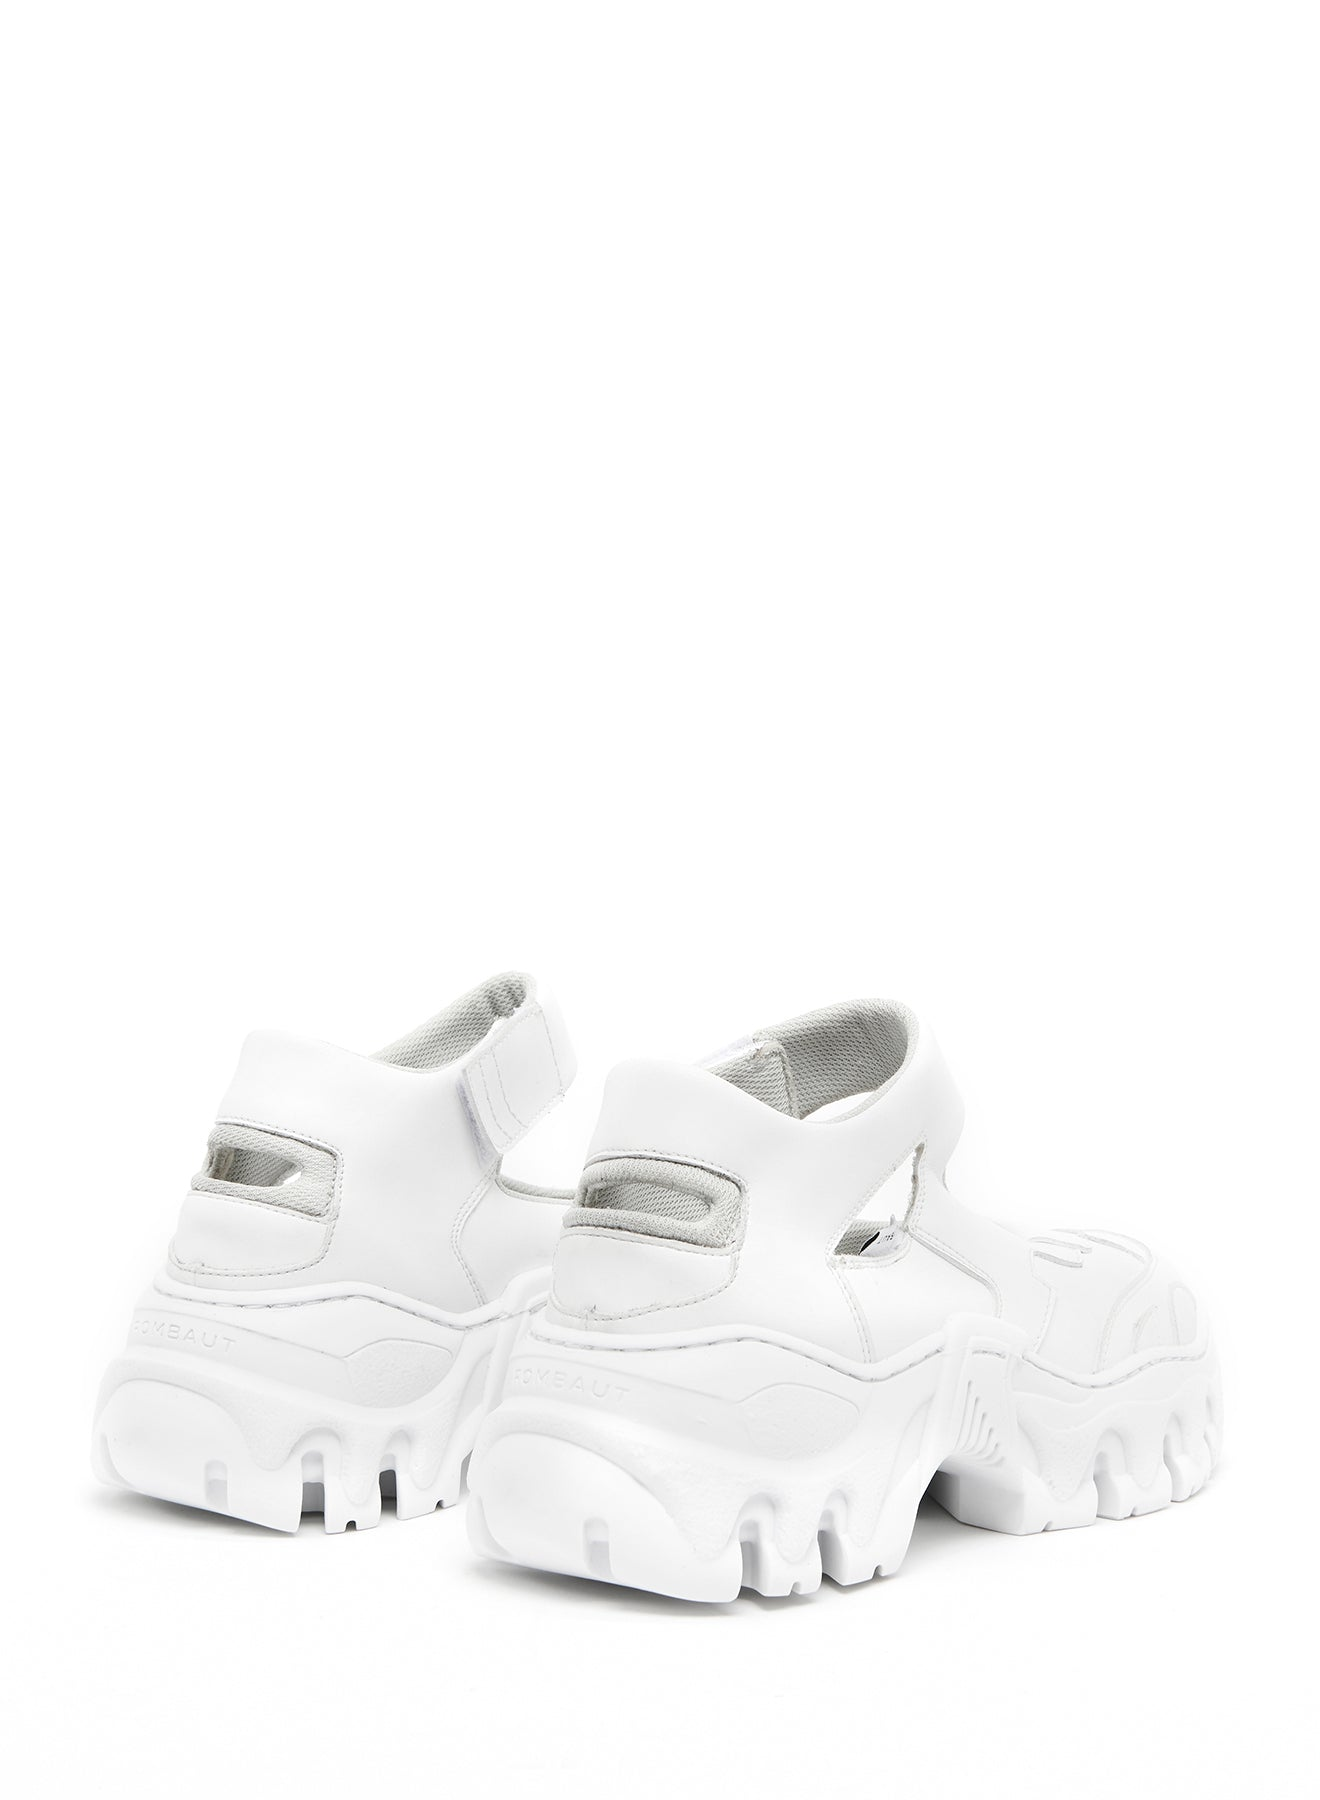 BOCCACCIO II IBIZA FUTURE LEATHER WHITE